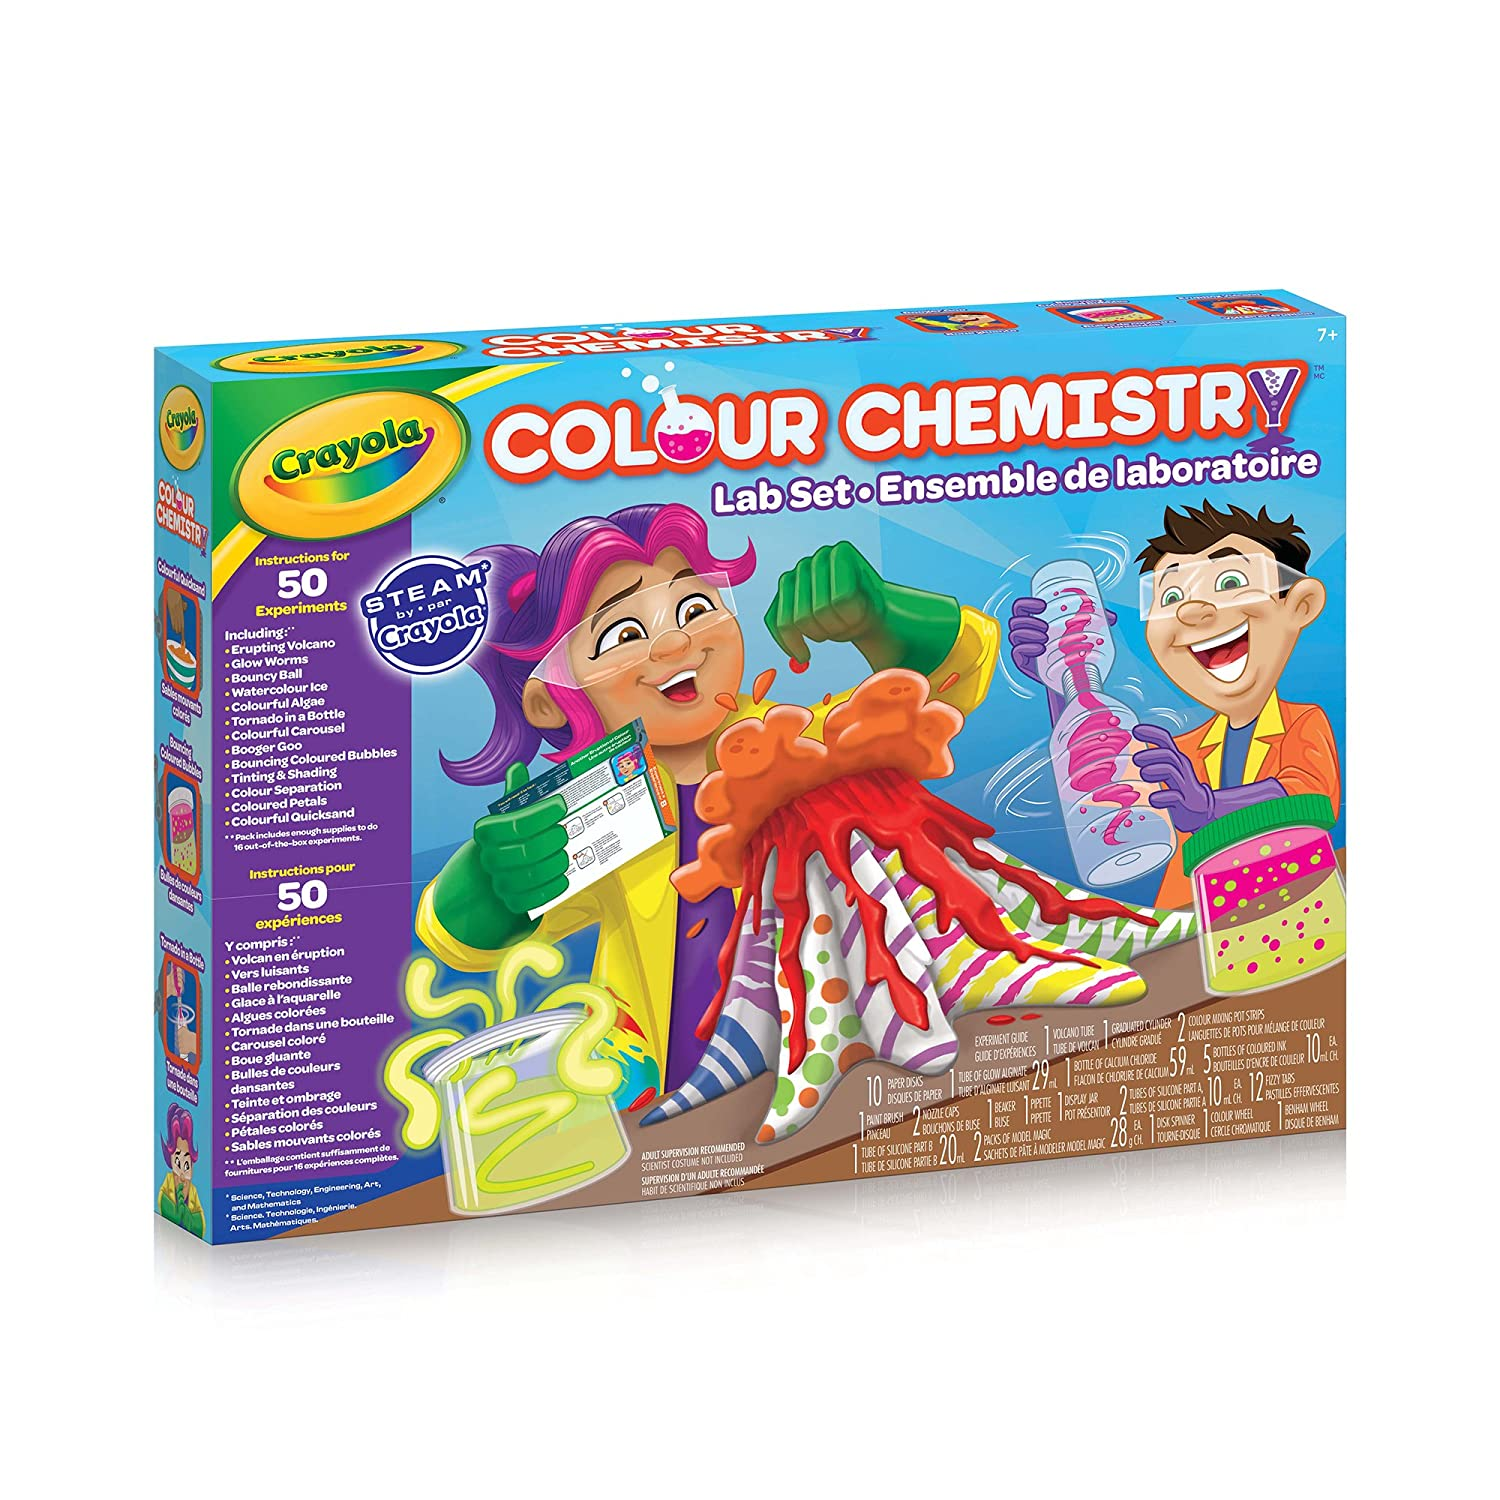 Crayola Colour Chemistry Lab Set Steam Diy Science Projects Gift Basic Electronics Toys For Kids Snap Circuits Jr Sc 100 Boys And Girls Ages 8 9 10 Up Holiday Arts Craft